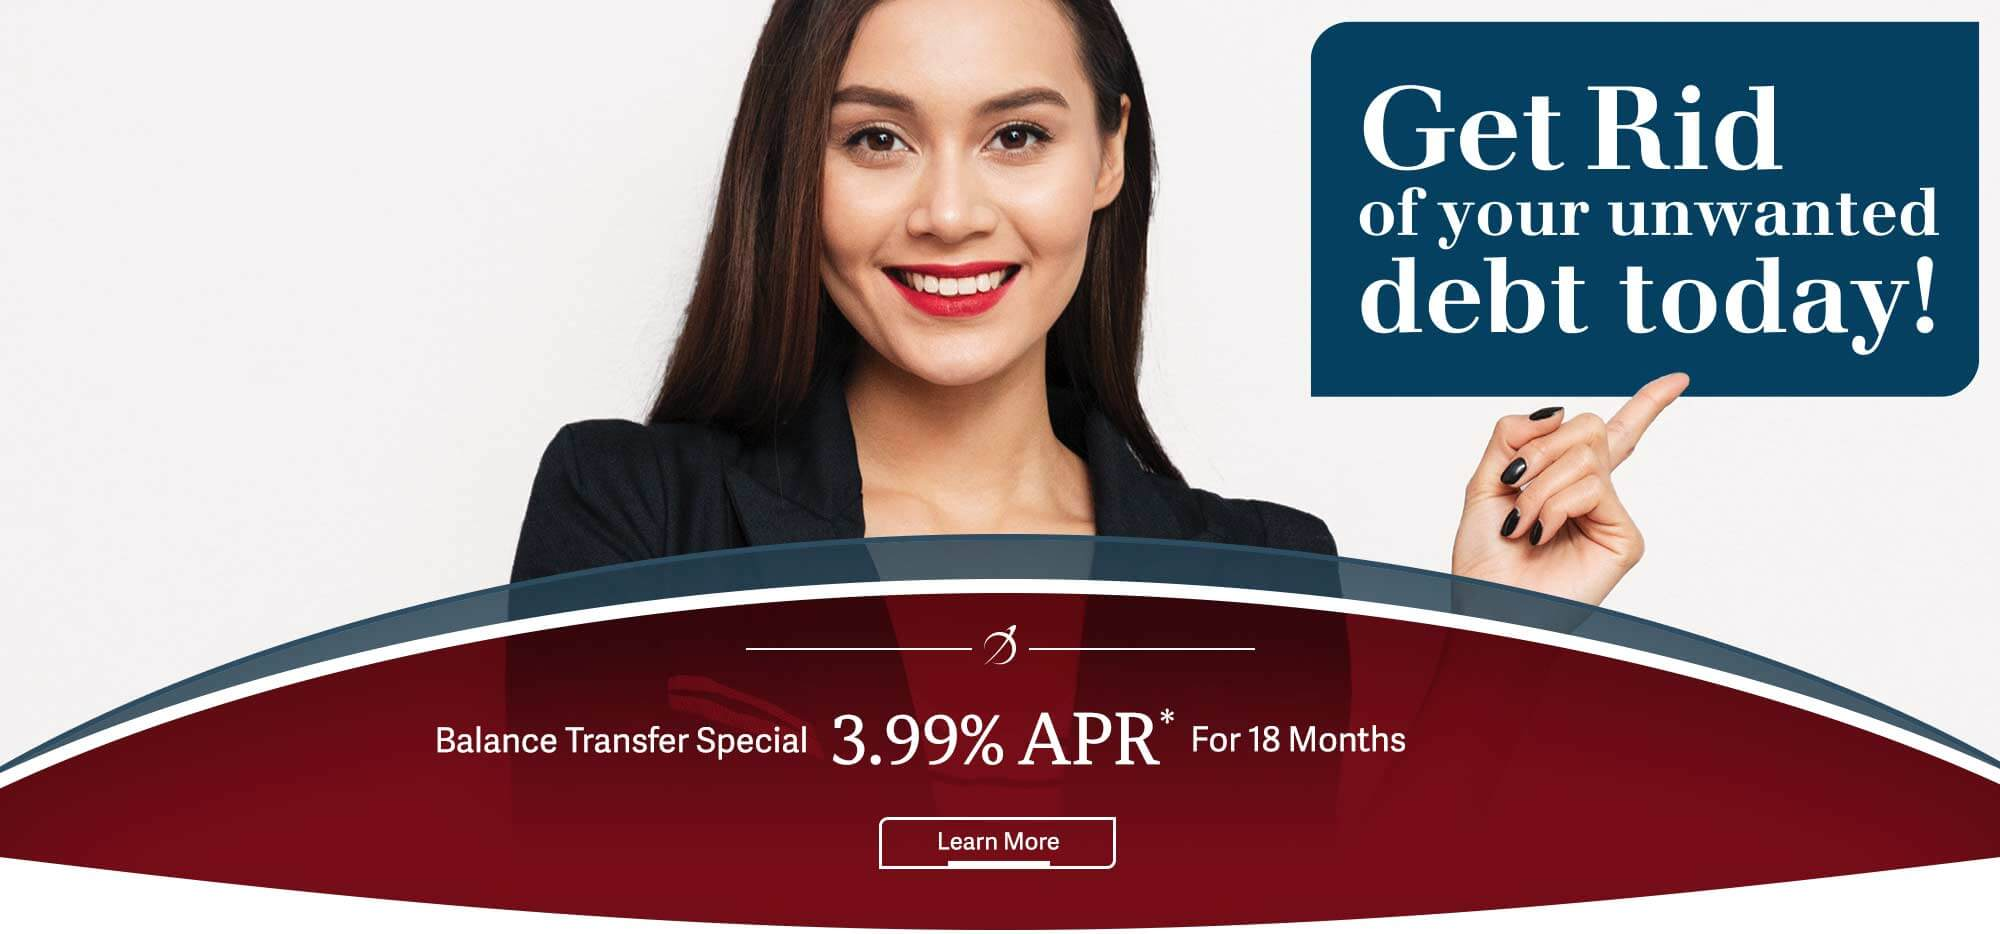 Visa Balance Transfer Special Get Rid of Your Unwanted Debt